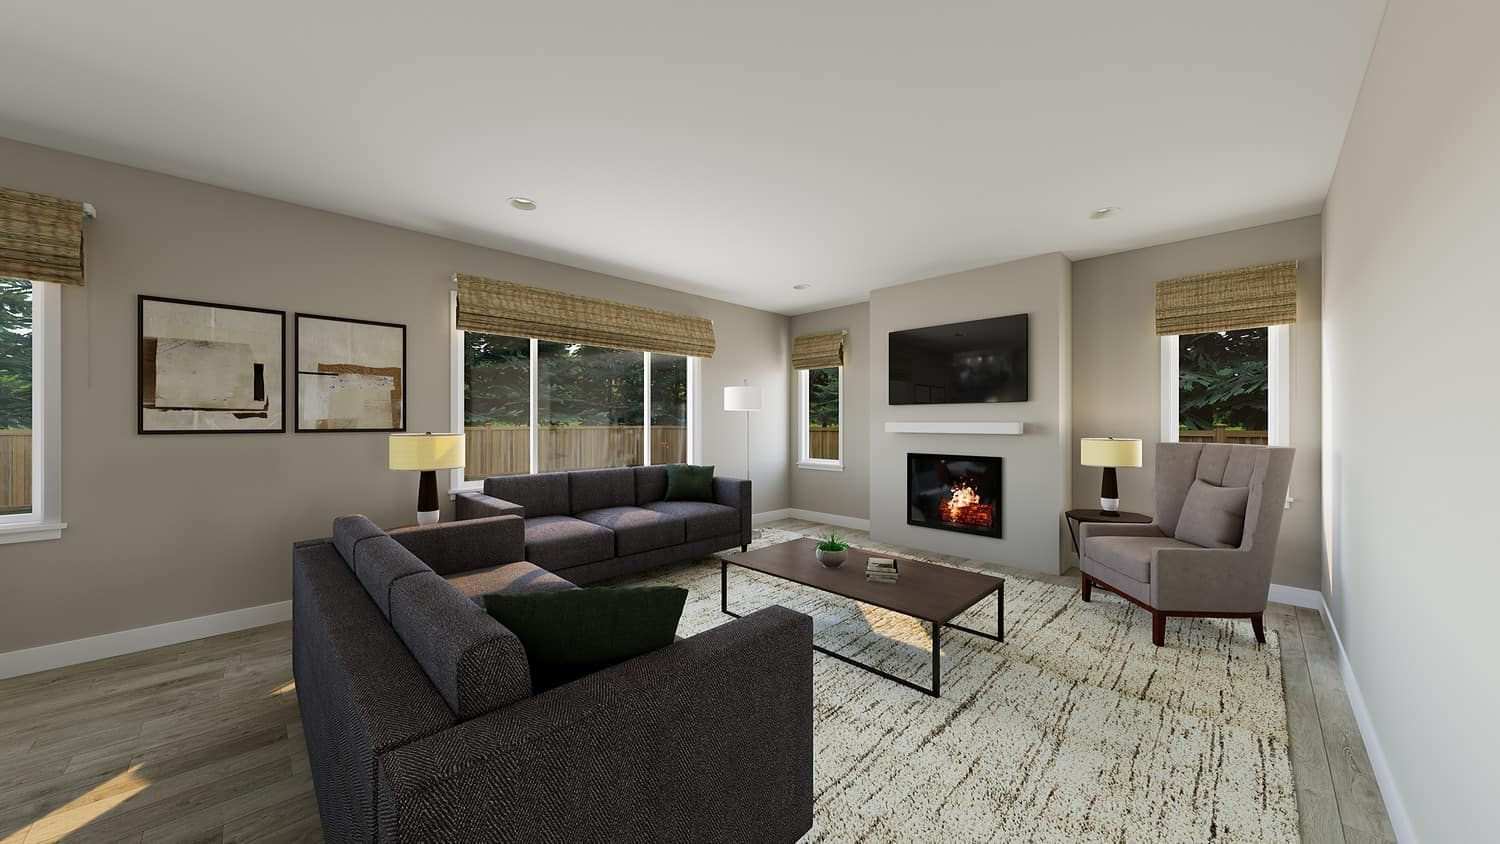 Living Area featured in the Plan A-300 By Tri Pointe Homes in Bremerton, WA